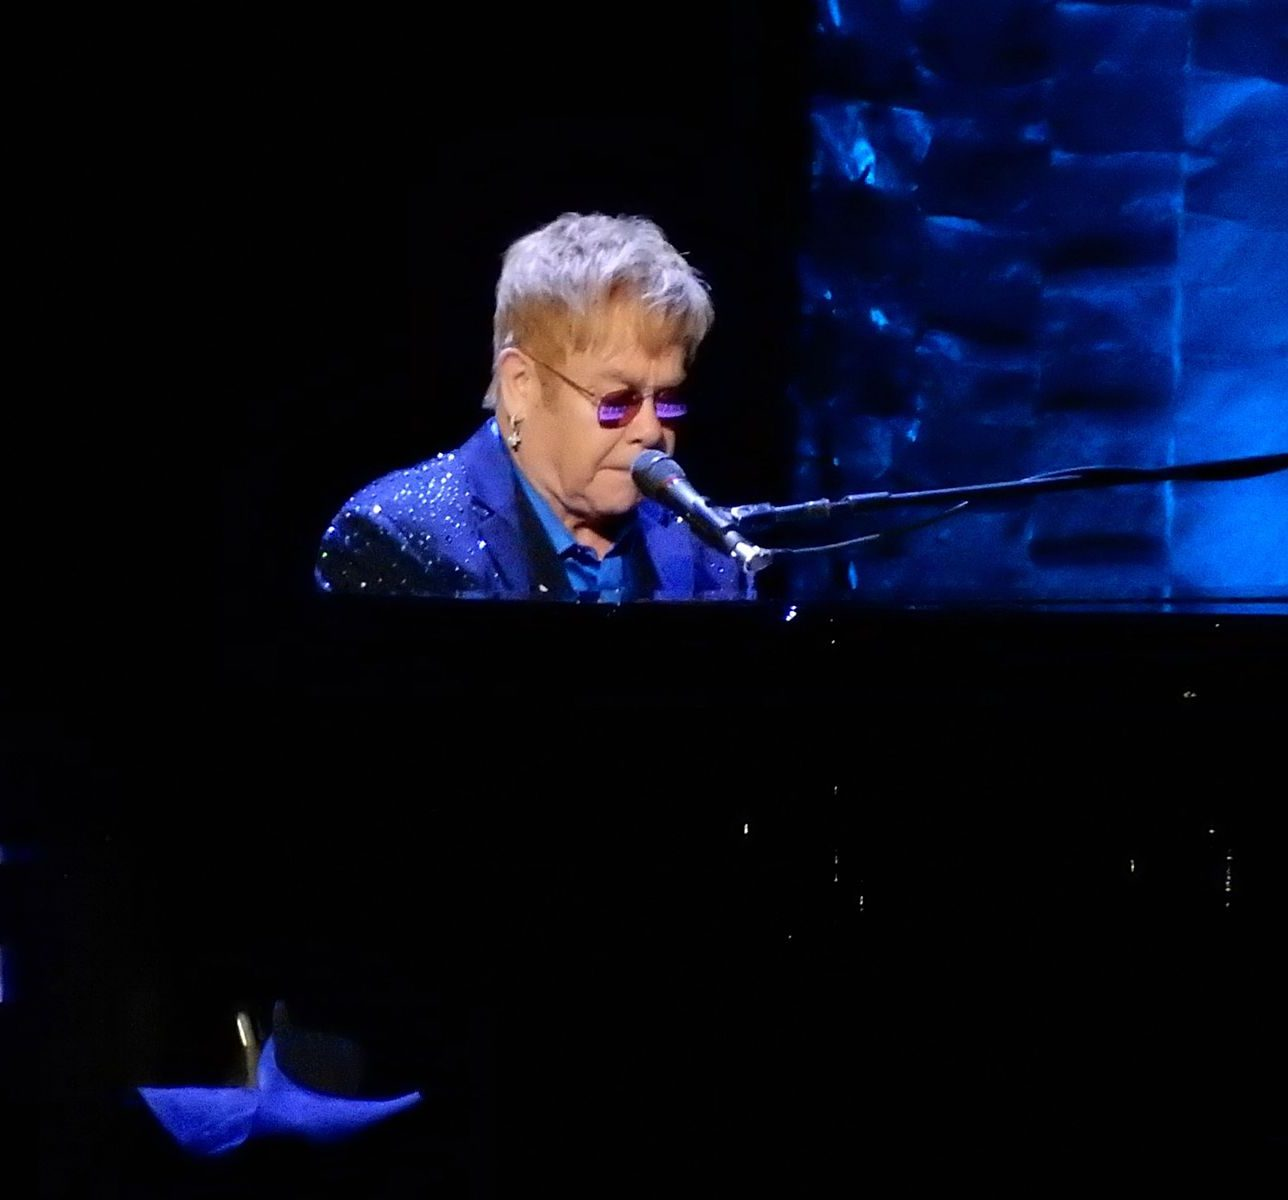 1 21 e1616667697748 23 Things You Didn't Know About Elton John